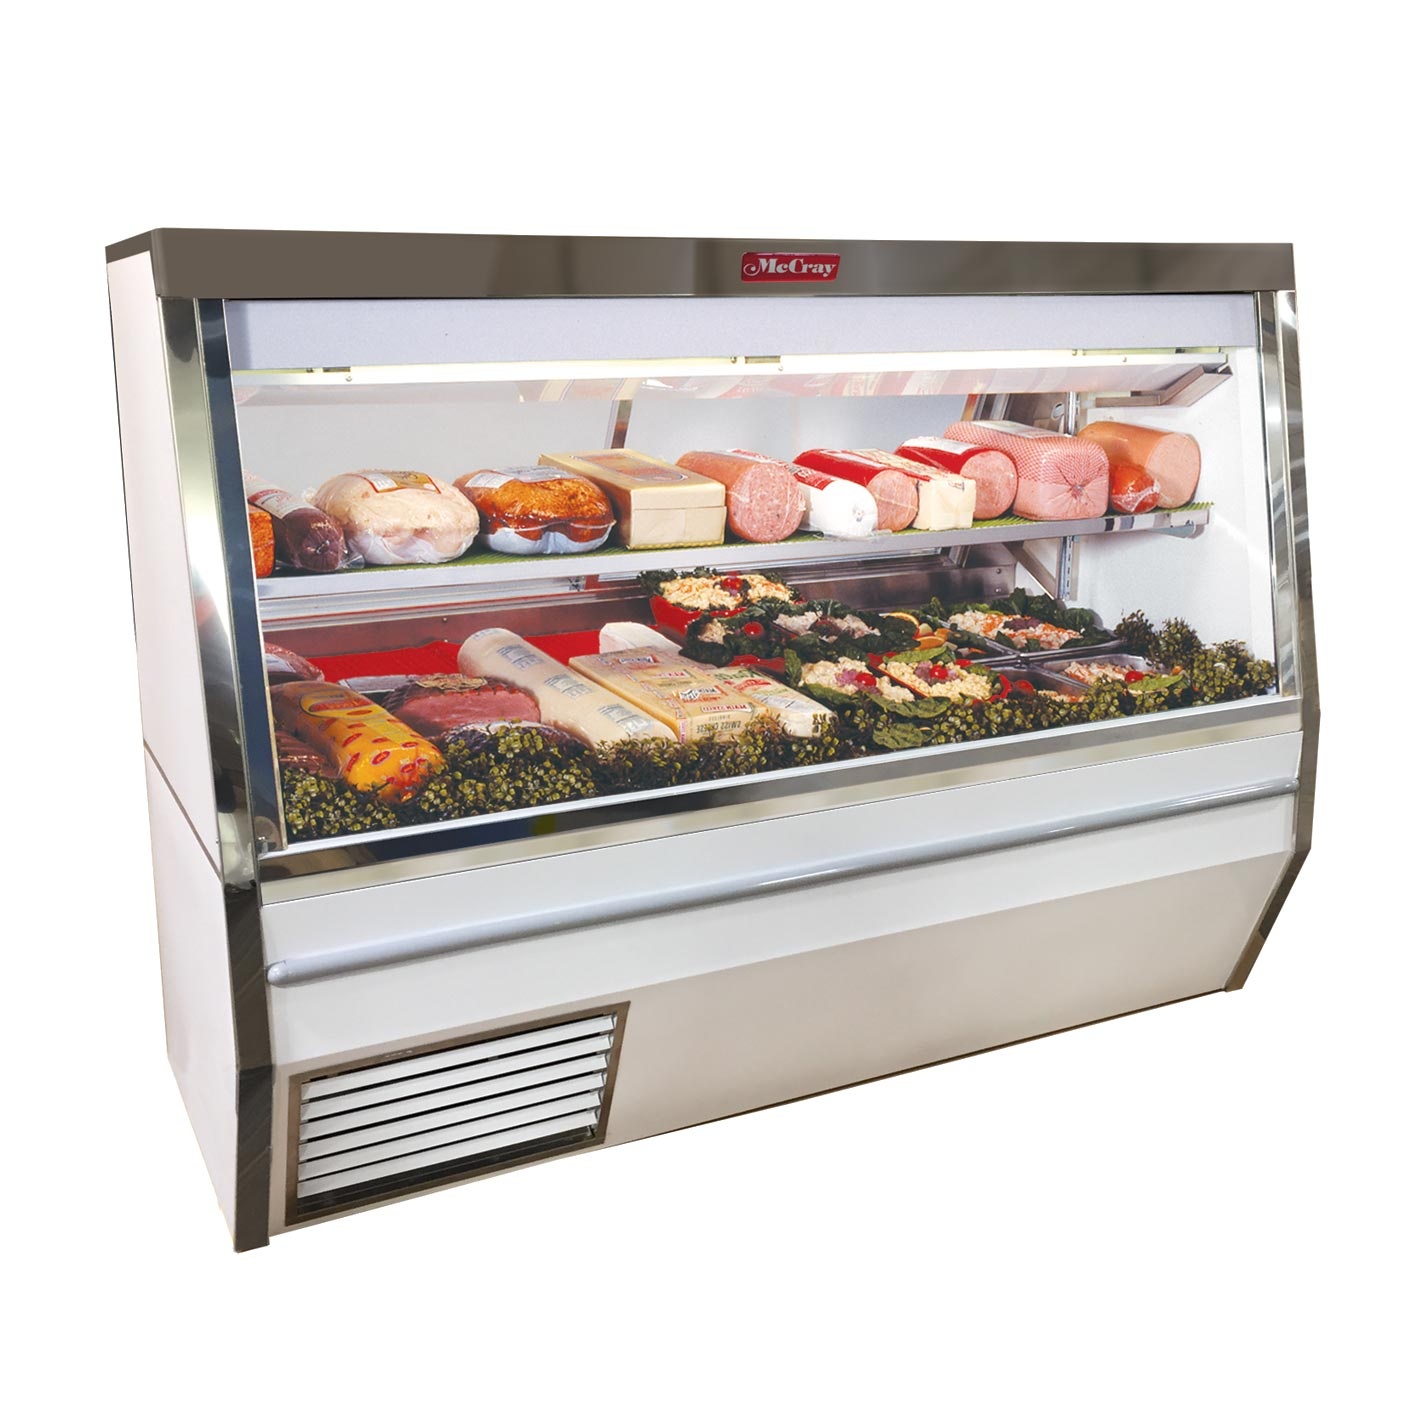 Howard-McCray SC-CDS34N-8-LED display case, refrigerated deli